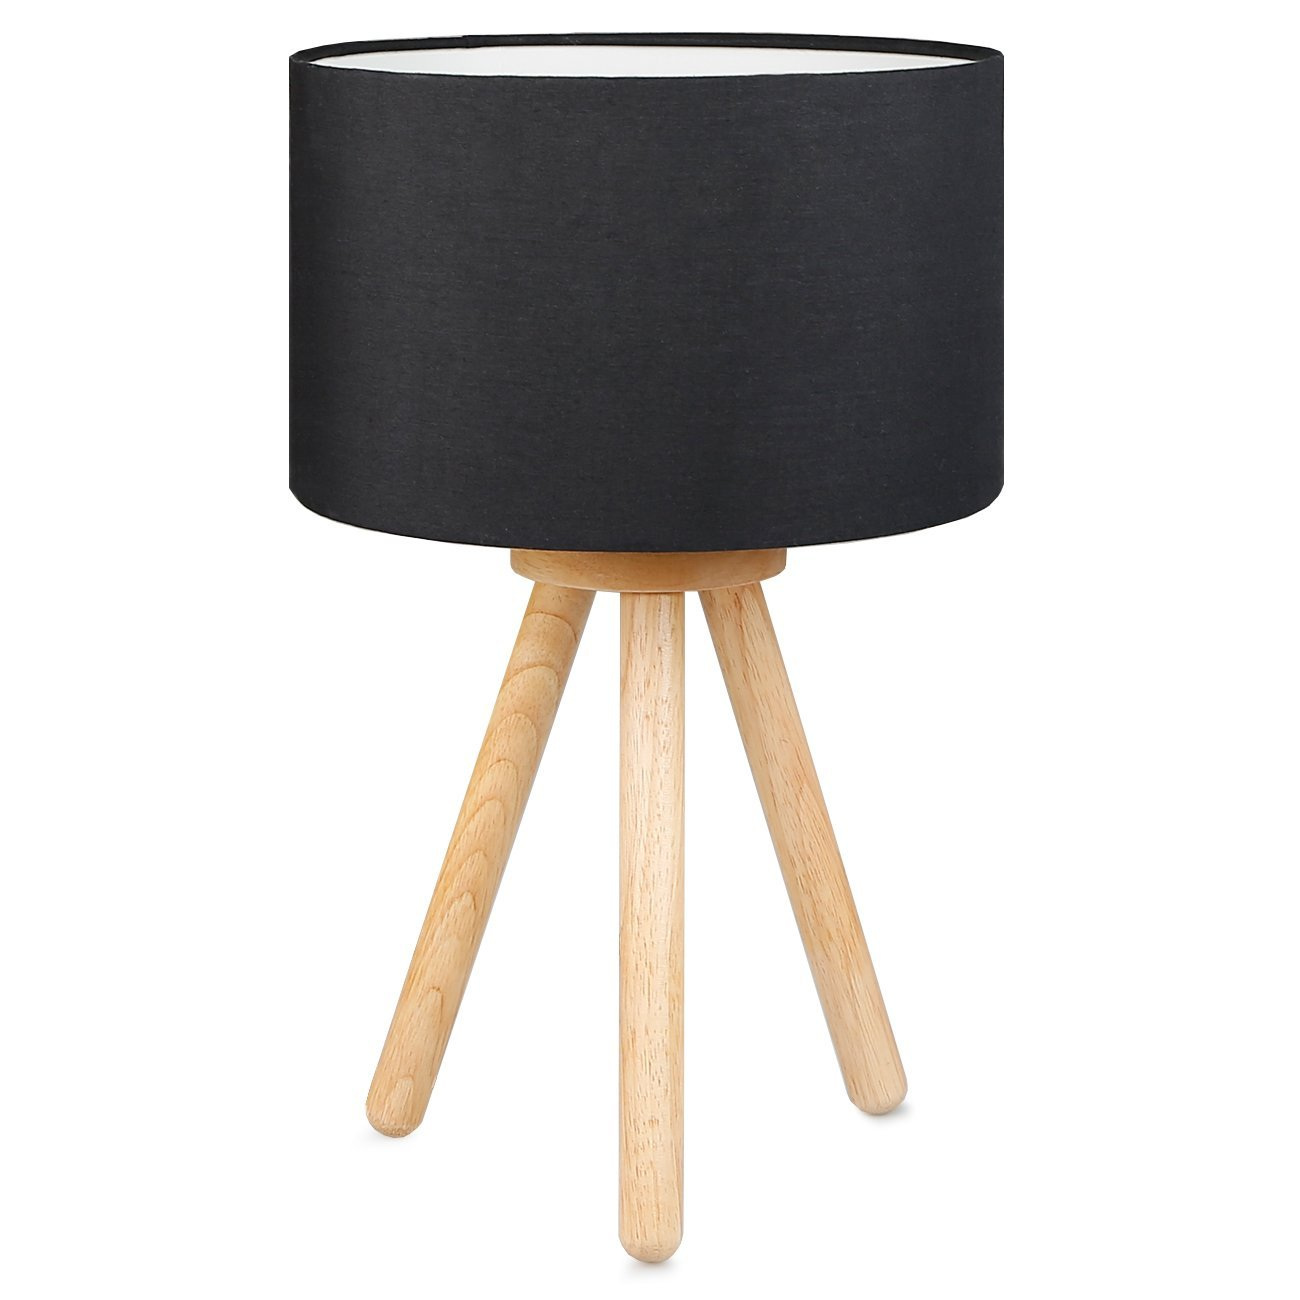 Tomons Wood Tripod Bedside Lamp, Simple Design Table Lamp with Soft Light for Bedroom Decorated in Warm and Cozy Ambience, Polyester Black Fabric Lampshade, Packaged with 4W LED Bulb